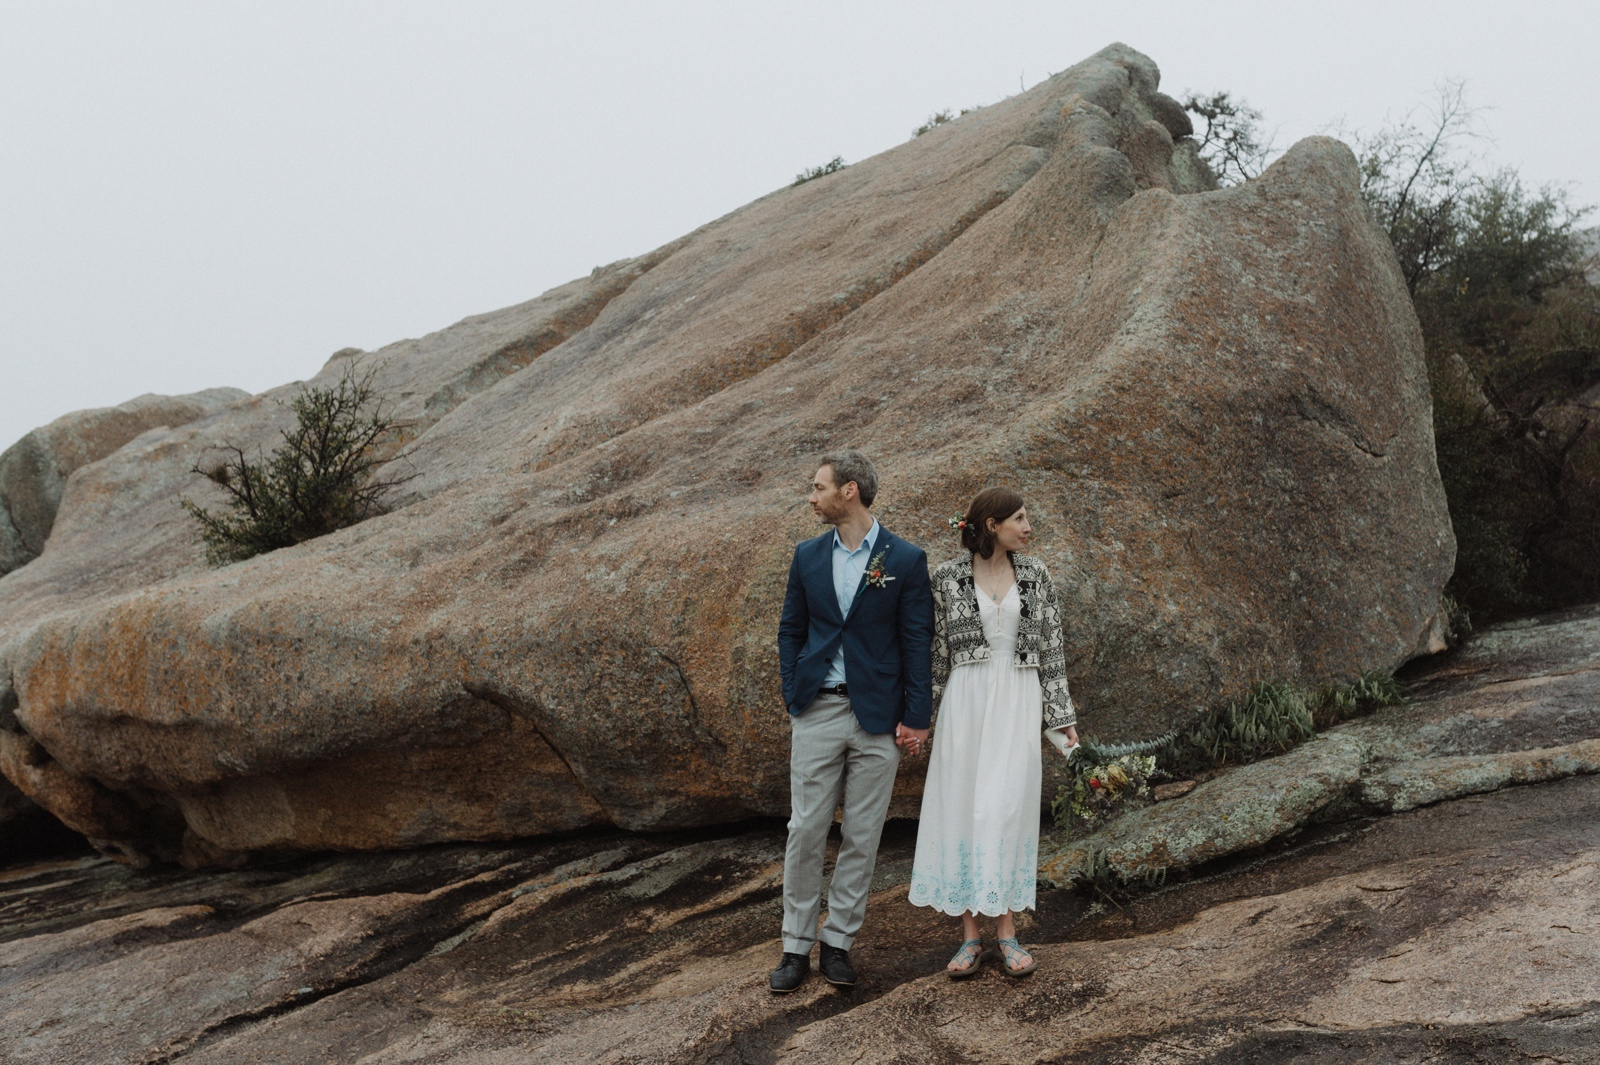 An elopement at Enchanted Rock with a simple white dress and blue detailed hiking sandals